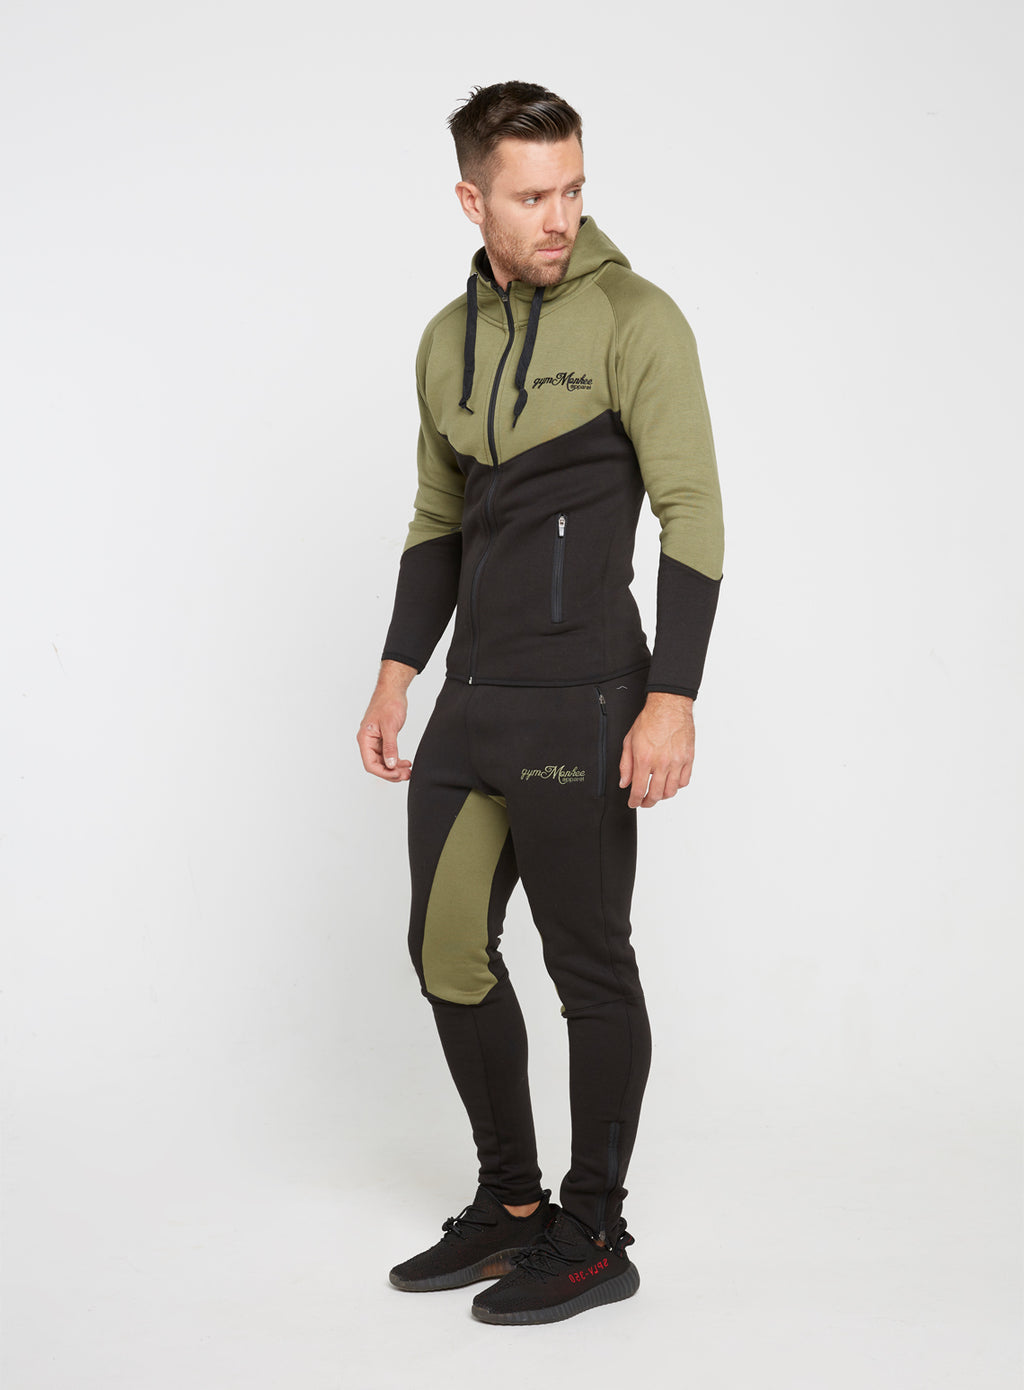 Gym Monkee - Black and Khaki Joggers FRONT MOVING